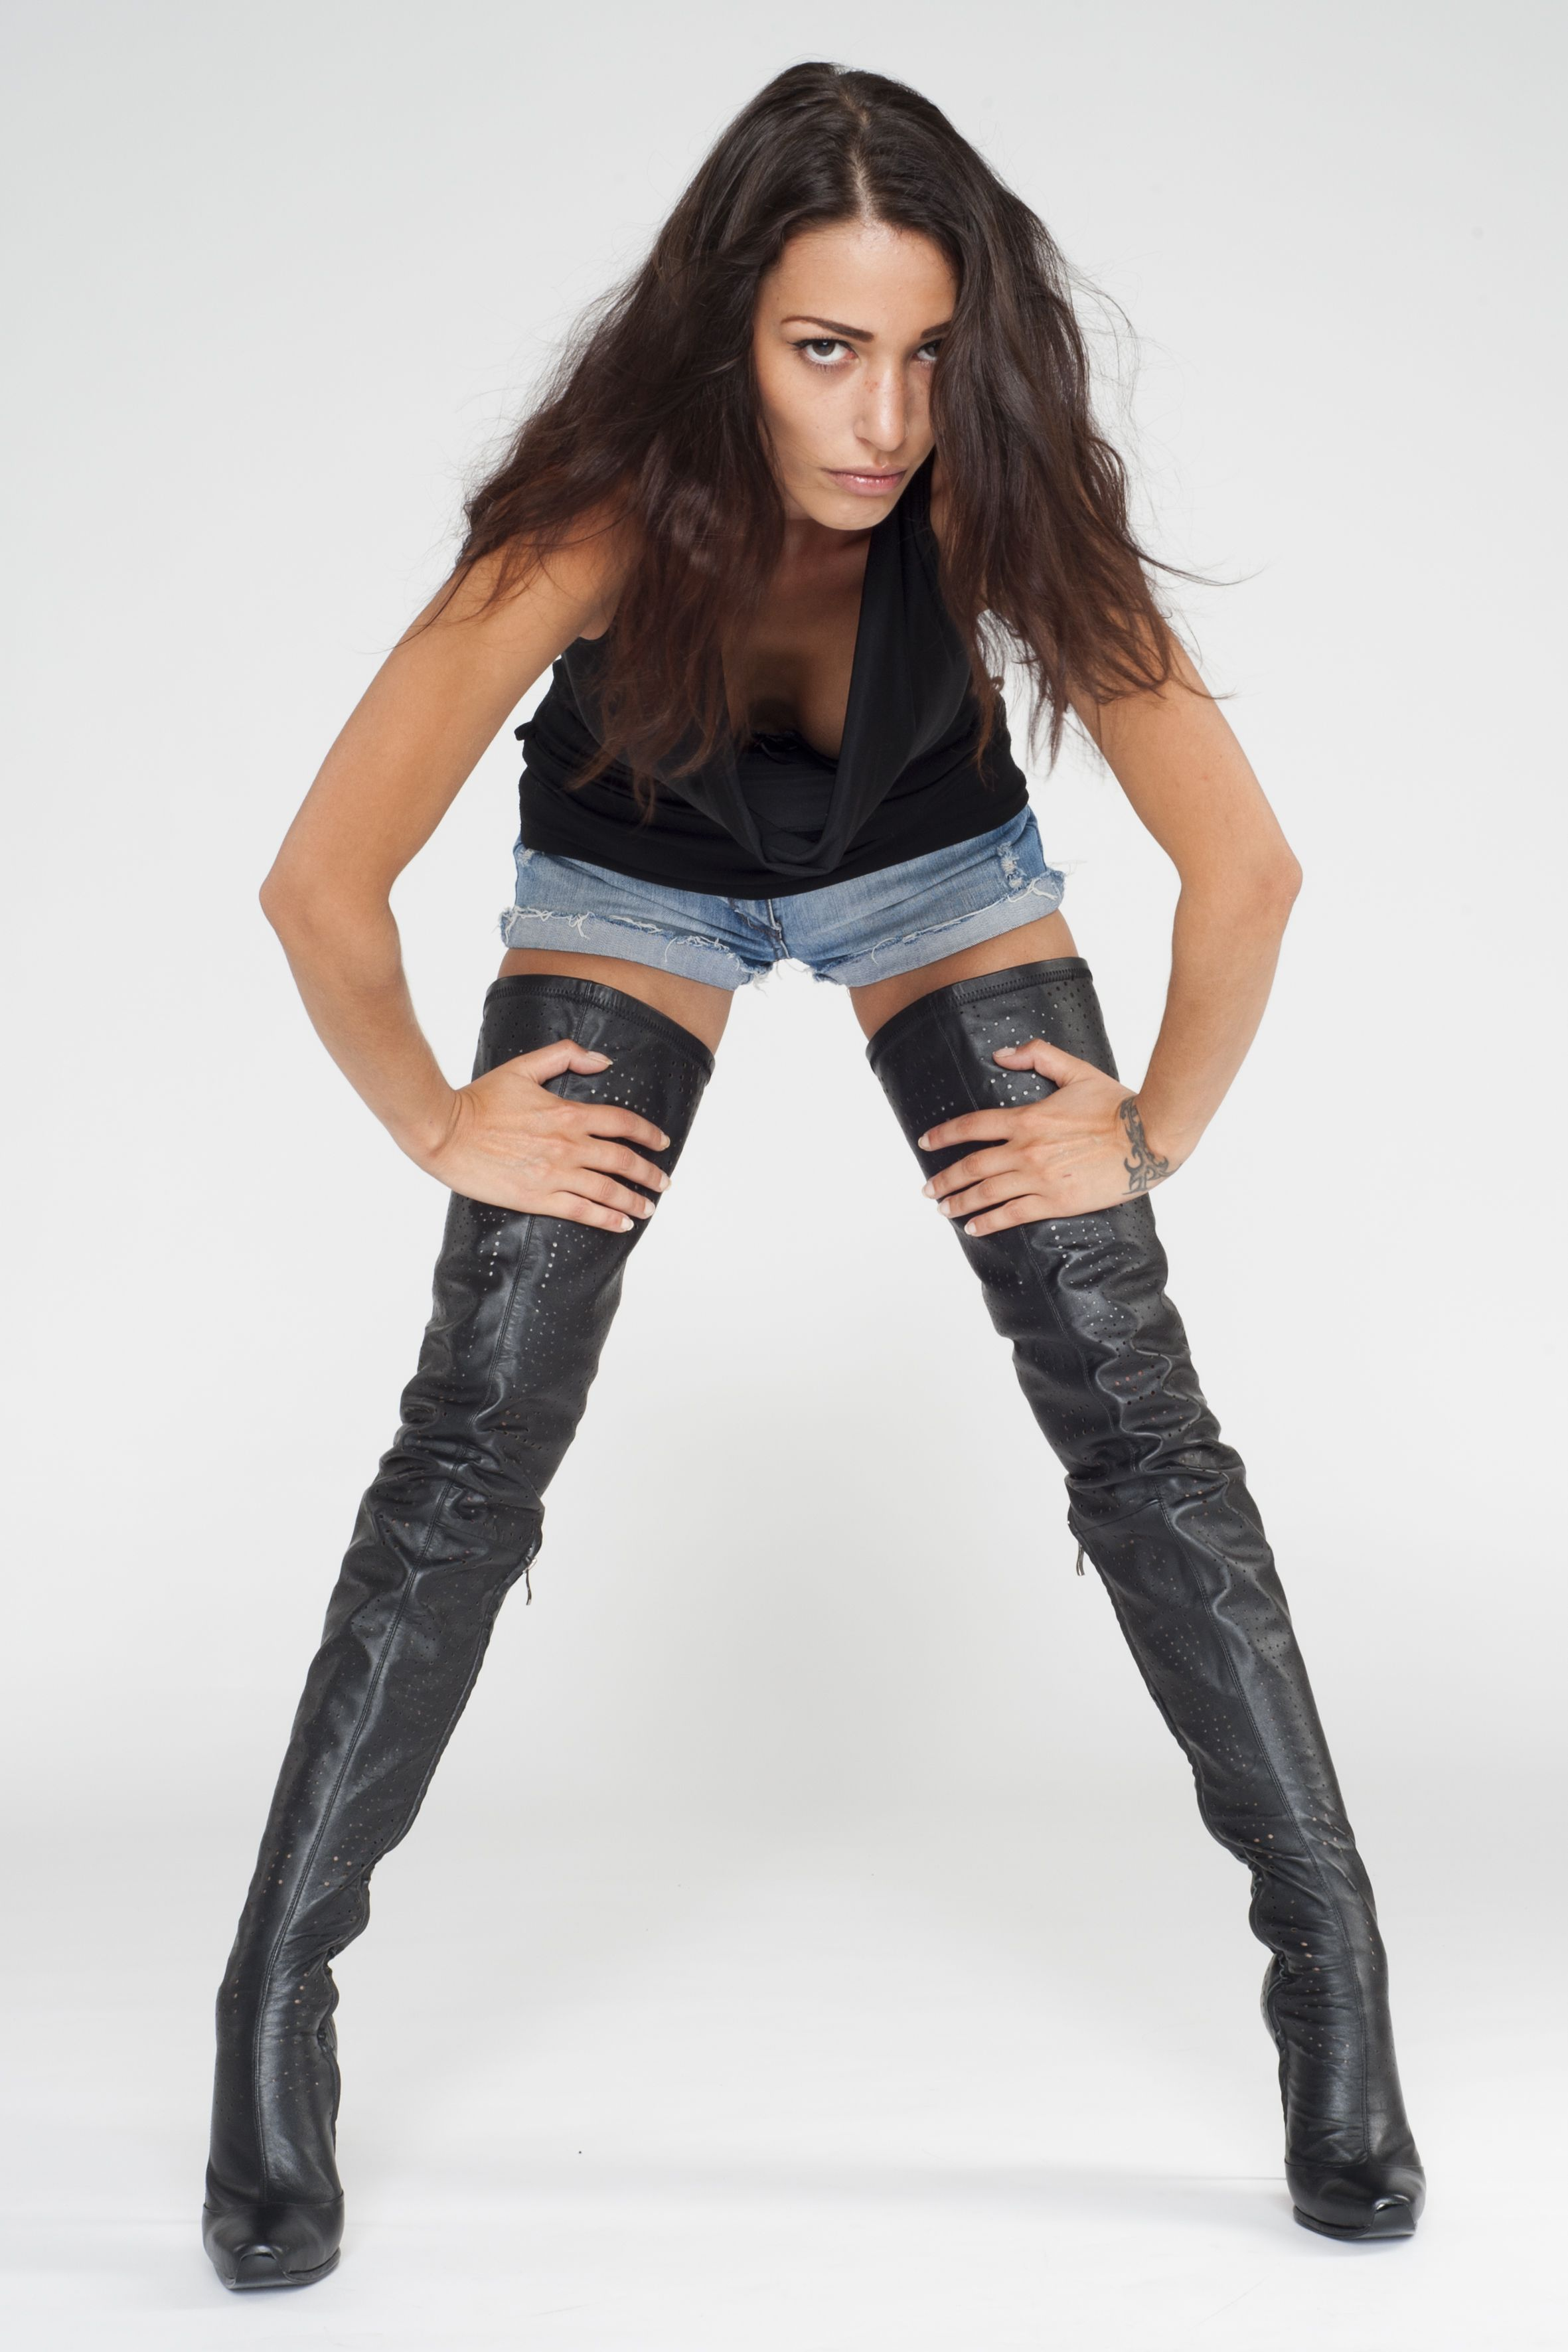 AROLLO real leather Thigh High Boots on http//:www.arollo.net ...